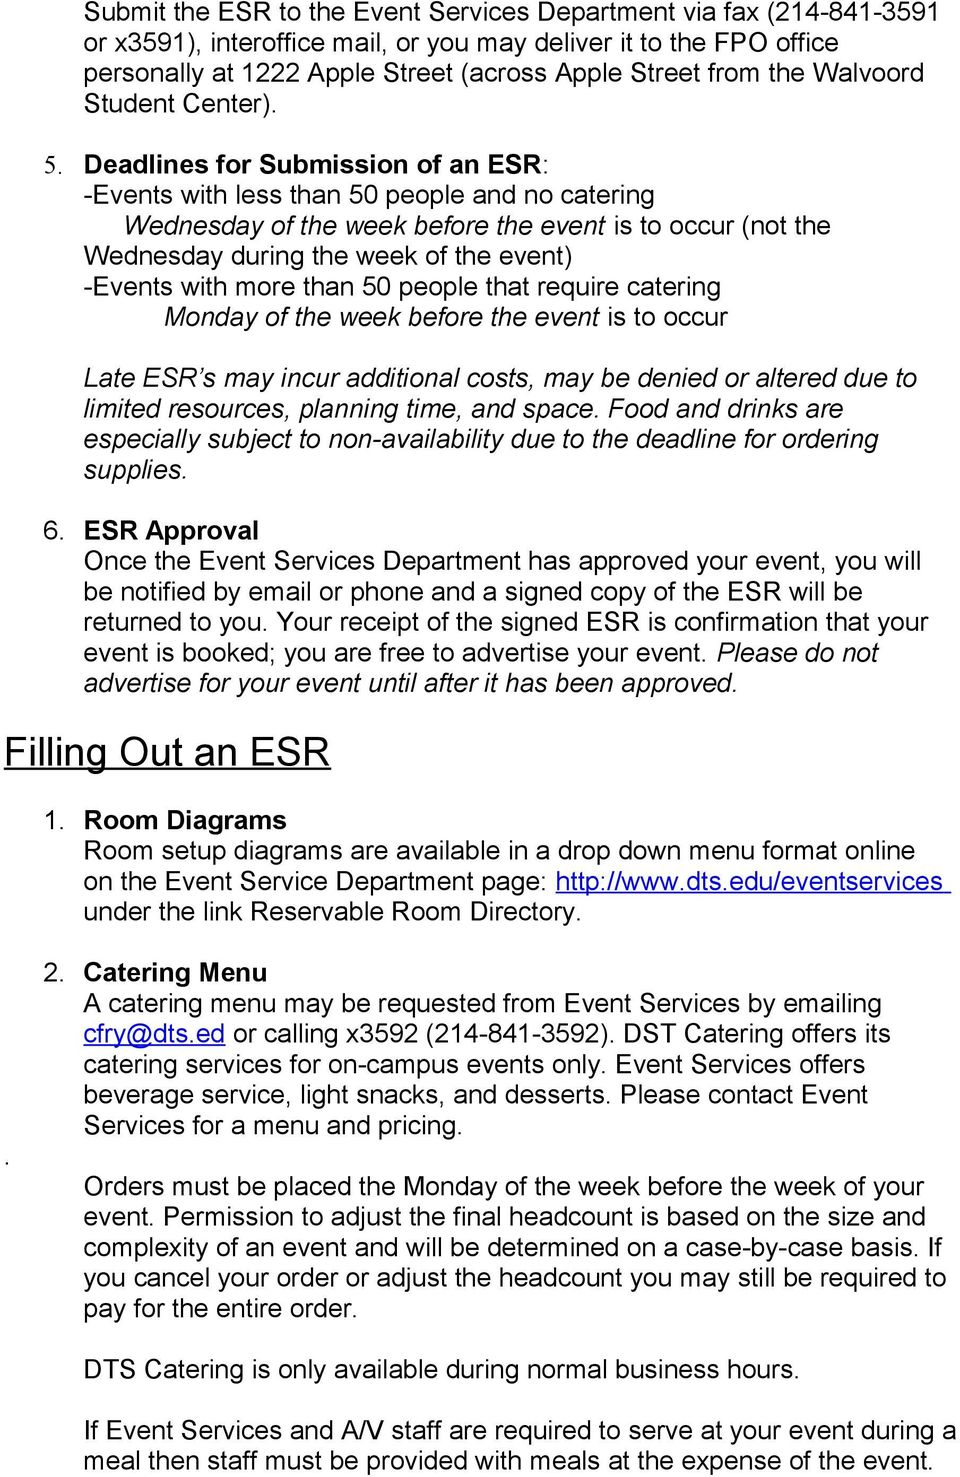 Deadlines for Submission of an ESR: -Events with less than 50 people and no catering Wednesday of the week before the event is to occur (not the Wednesday during the week of the event) -Events with